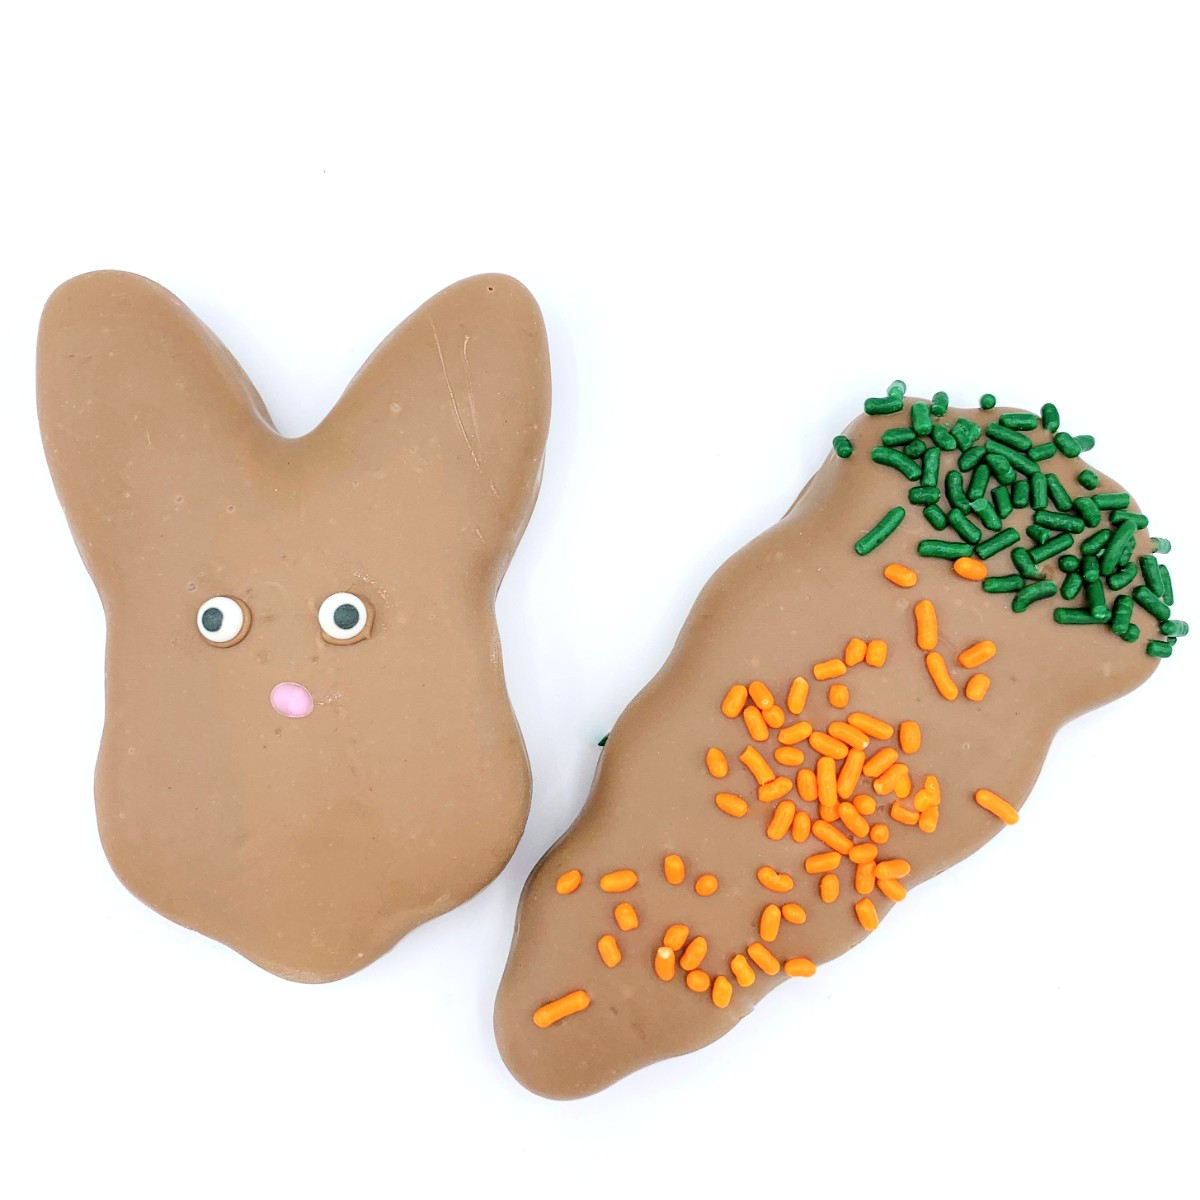 Milk Chocolate Peanut Butter Meltie Carrot and Bunny